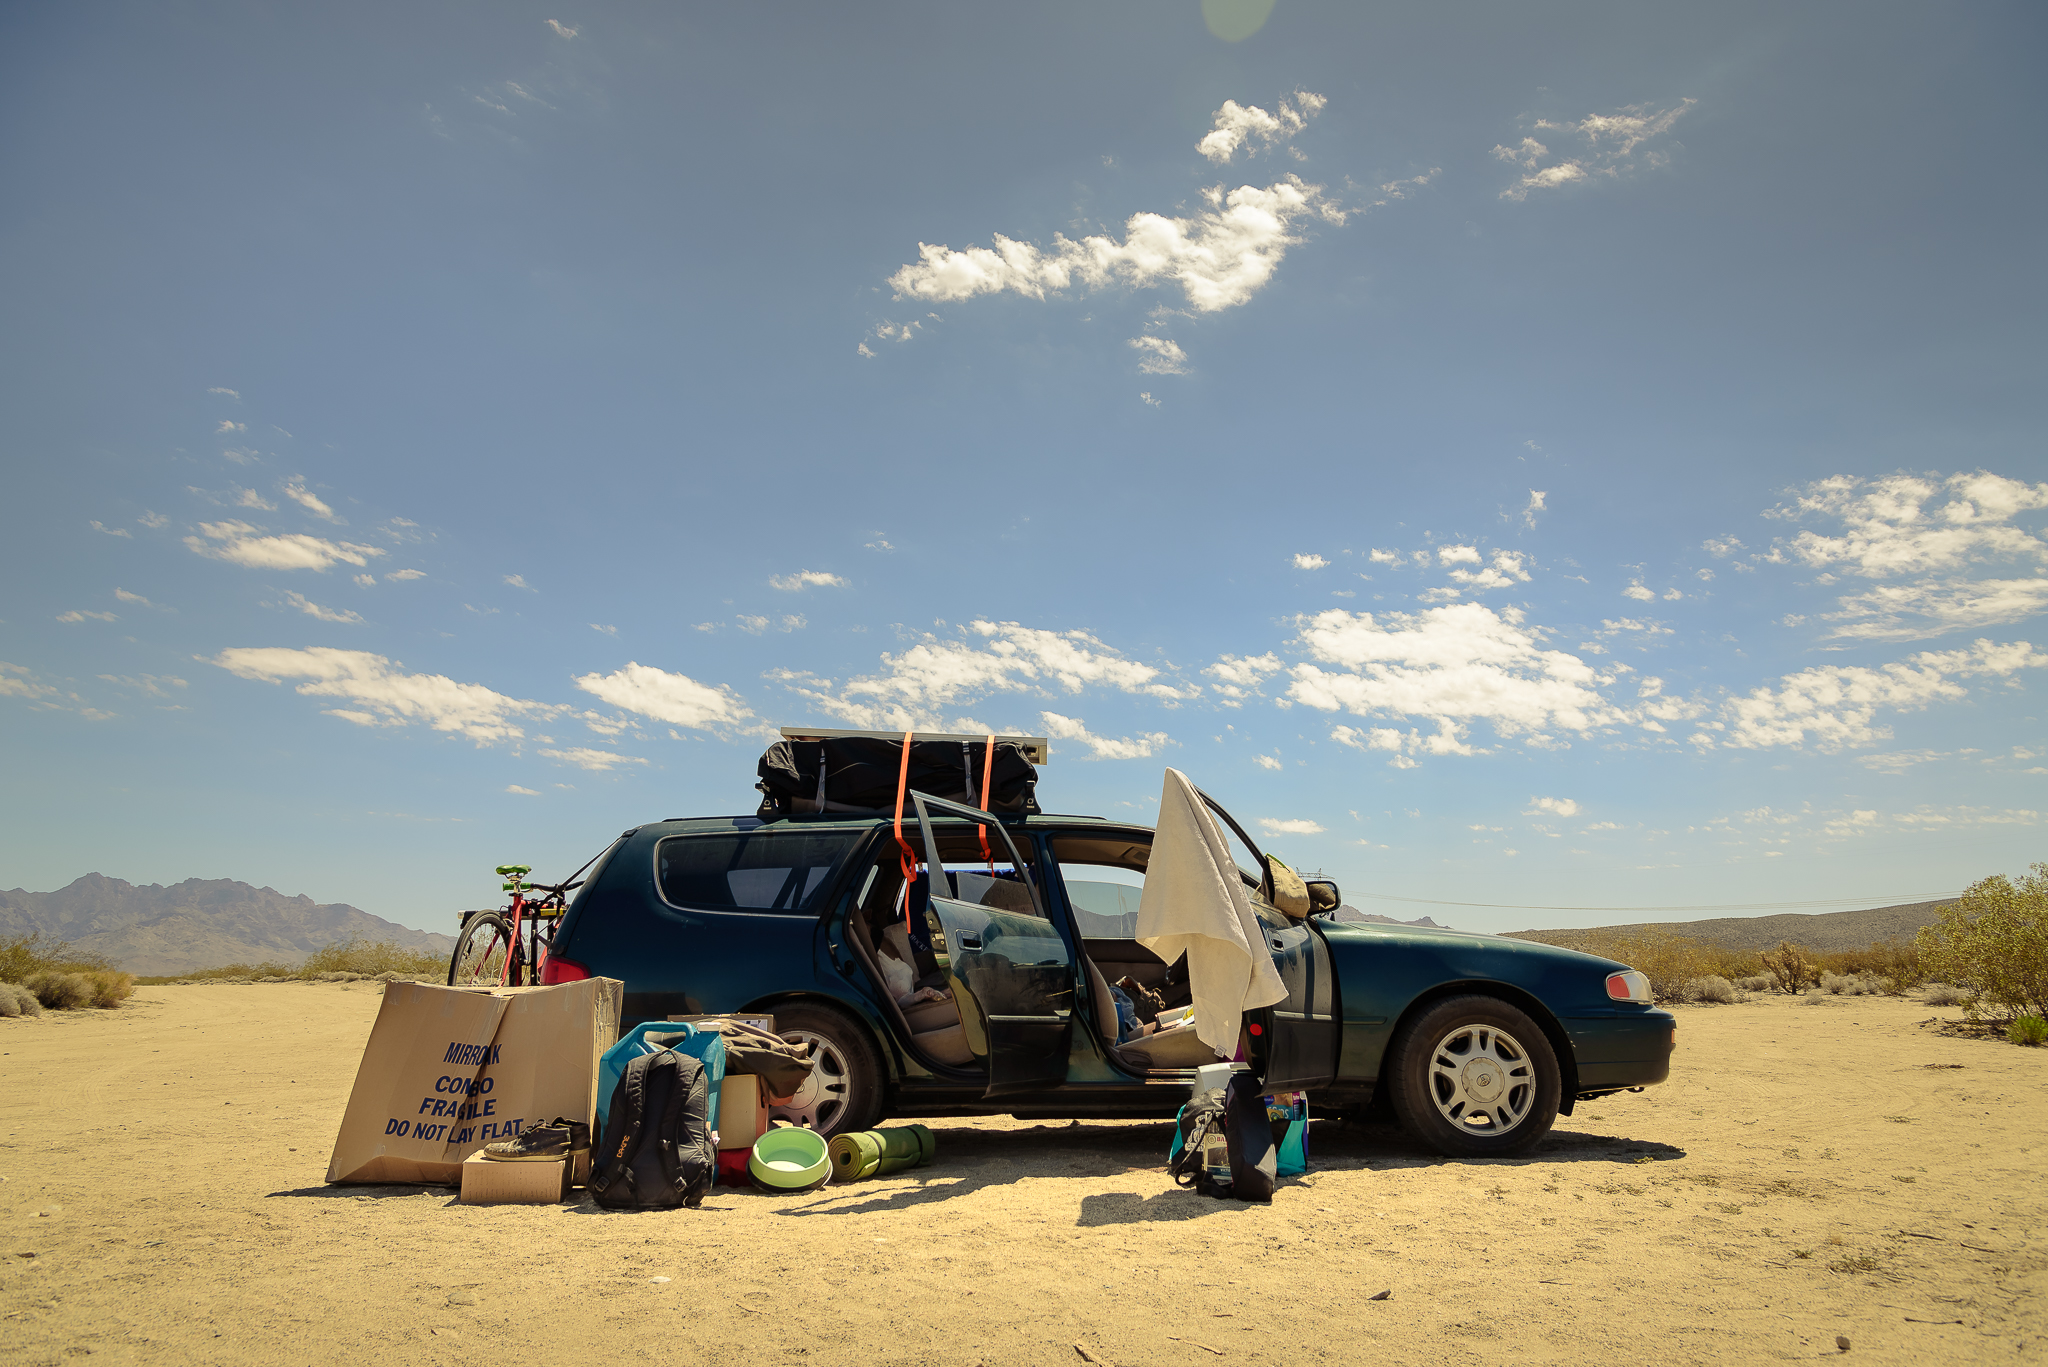 The universe helped me acquire a second, slightly less banged-up Adventure Wagon back in January, it was time to stretch her legs. Why not take her across the country?? Kelso Dunes. Mojave Desert, CA